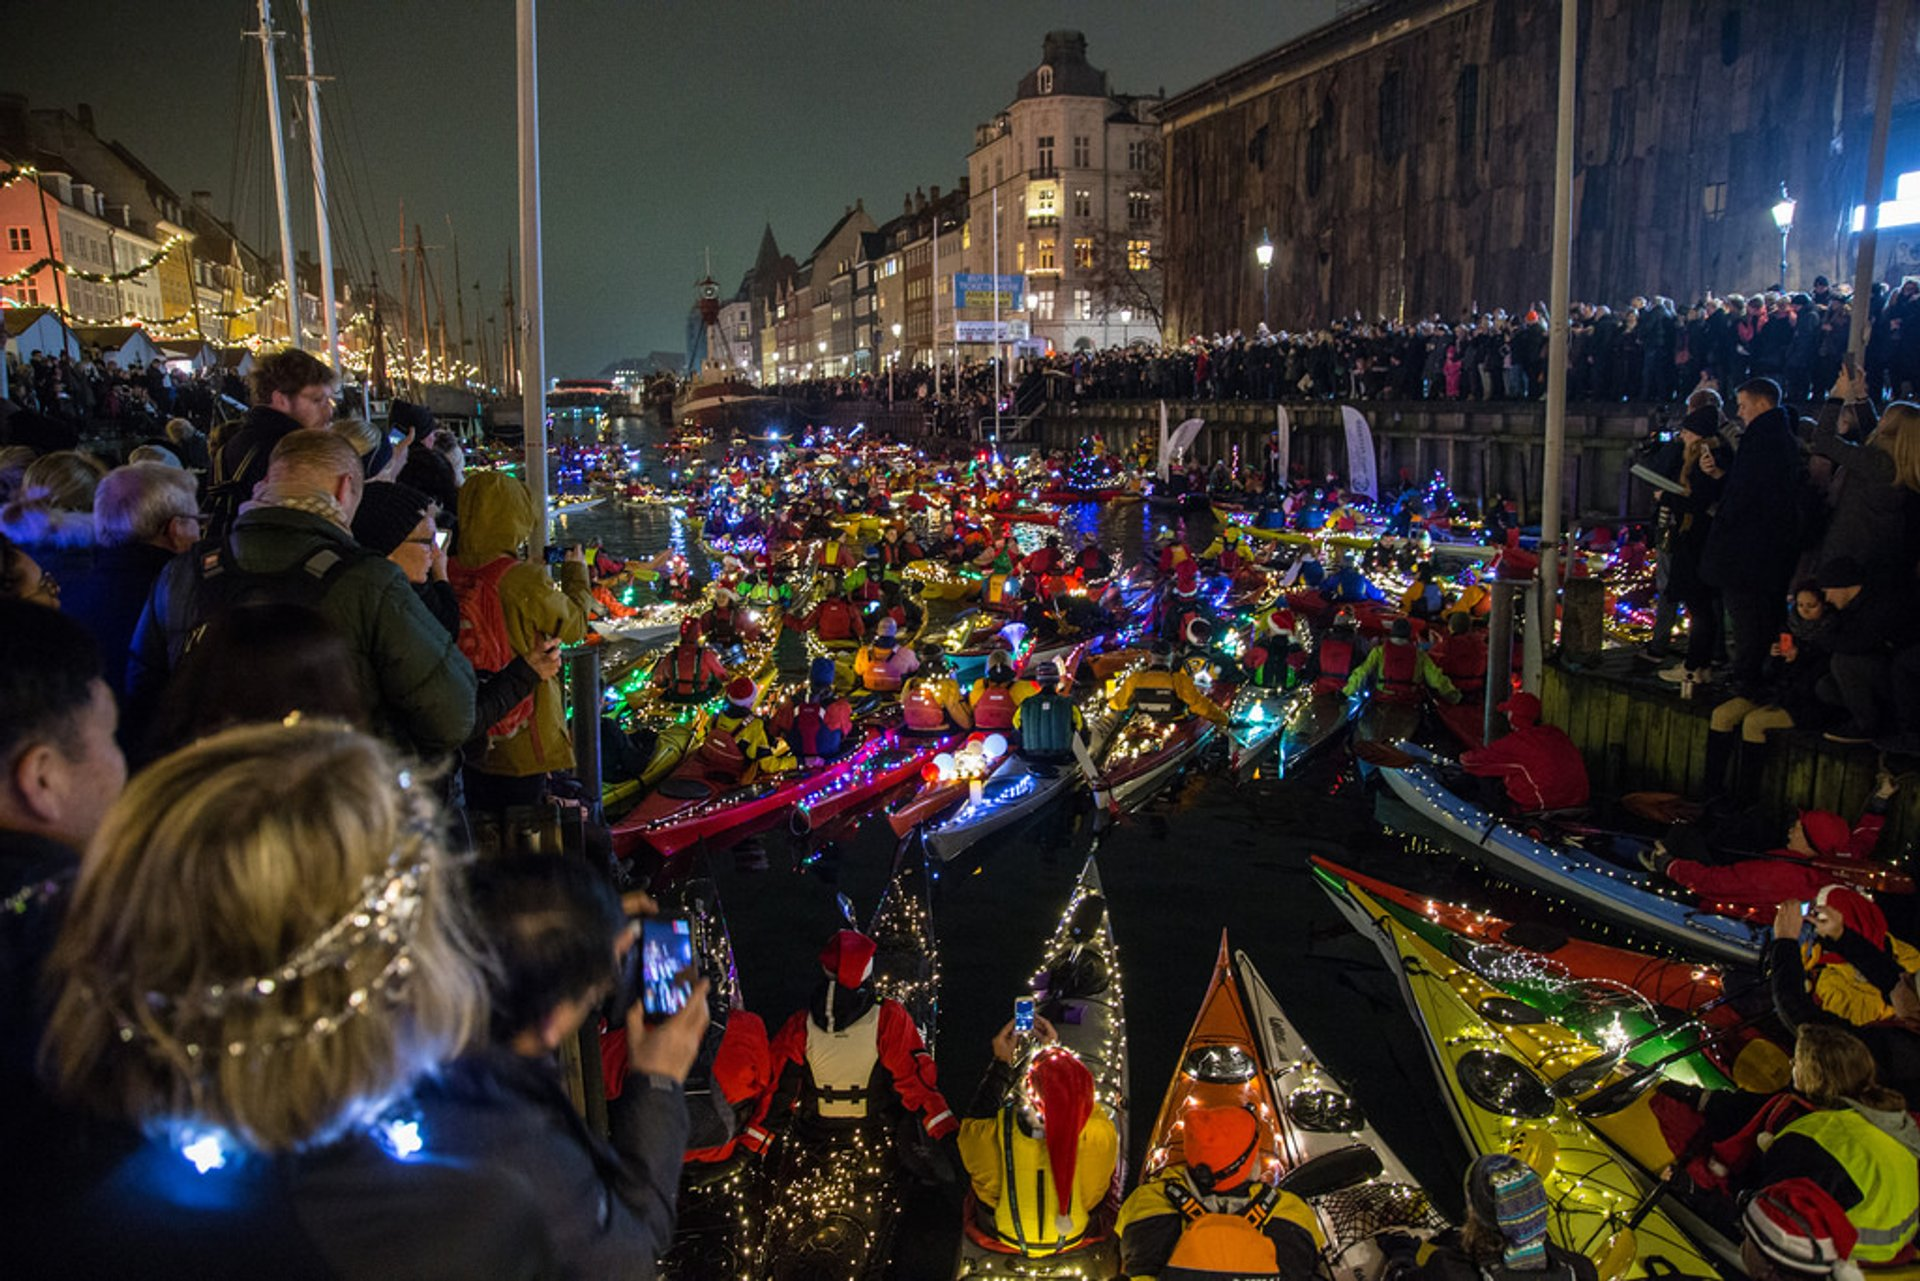 Saint Lucia Day in Copenhagen - Best Season